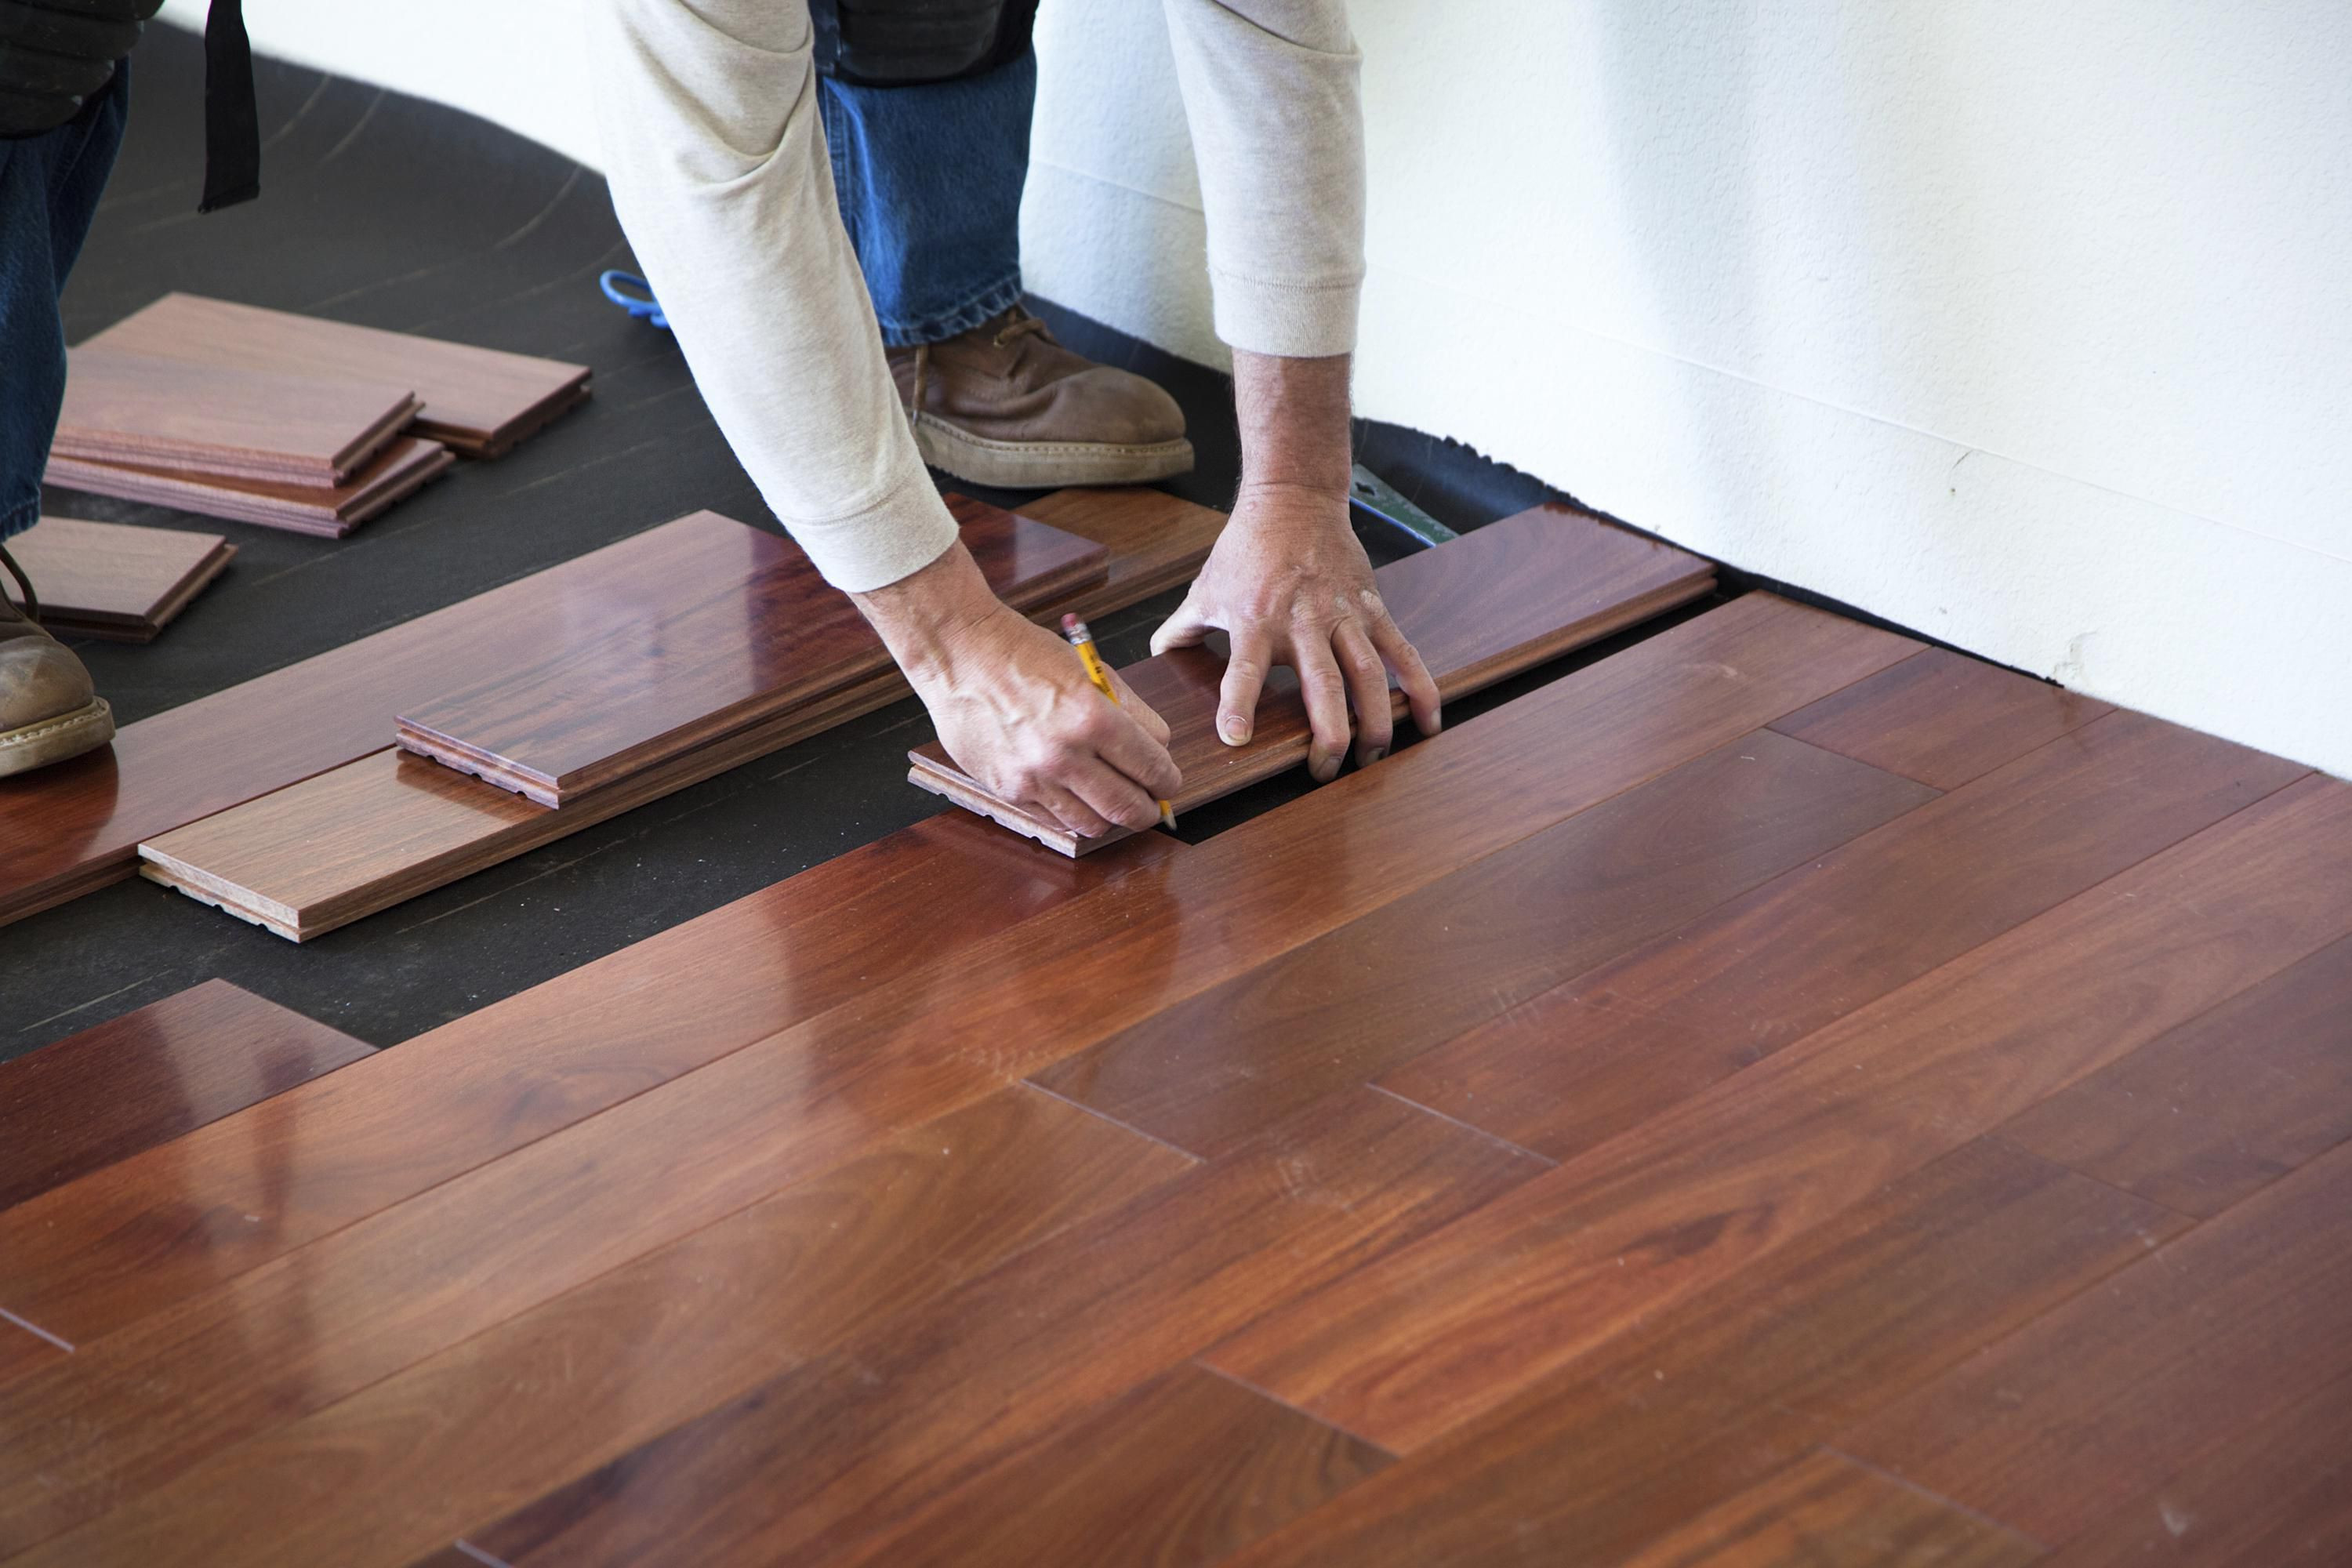 Wholesale Hardwood Flooring Canada Of Brazilian Hardwood Floor Basics for 170040982 56a49f213df78cf772834e21